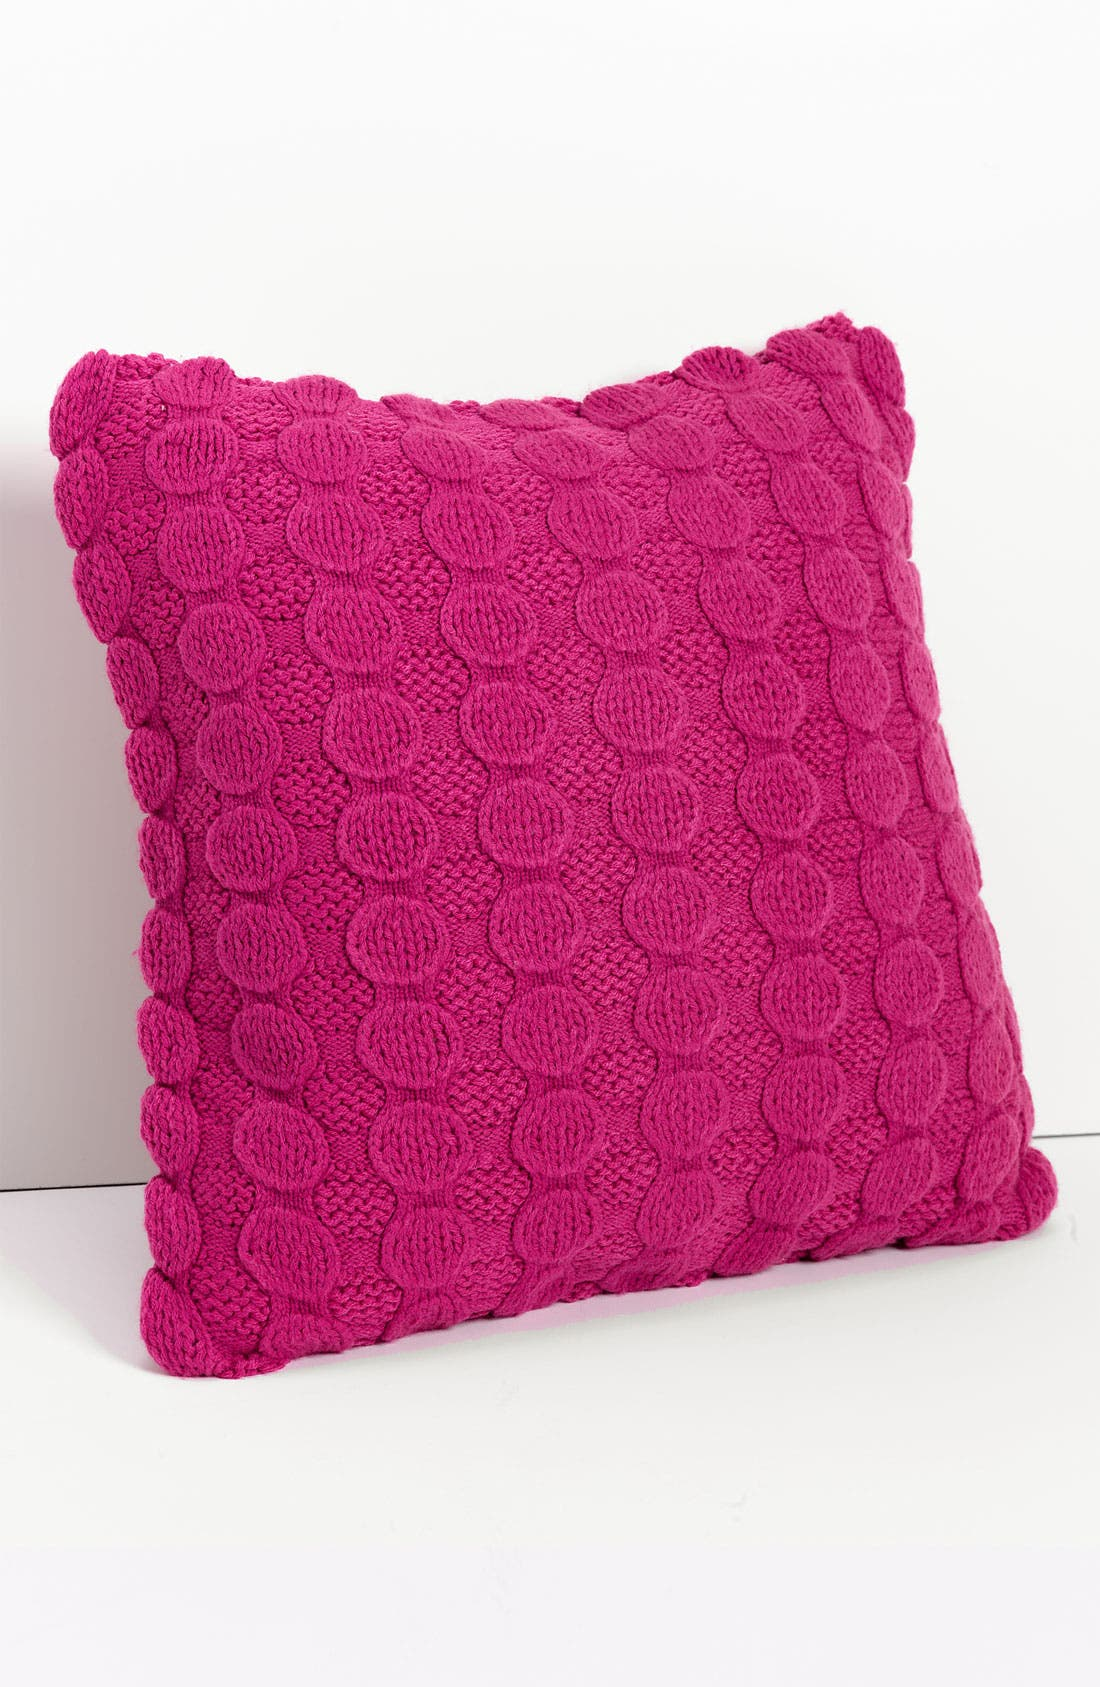 Alternate Image 1 Selected - Nordstrom at Home 'Bubble Wrap' Knit Pillow